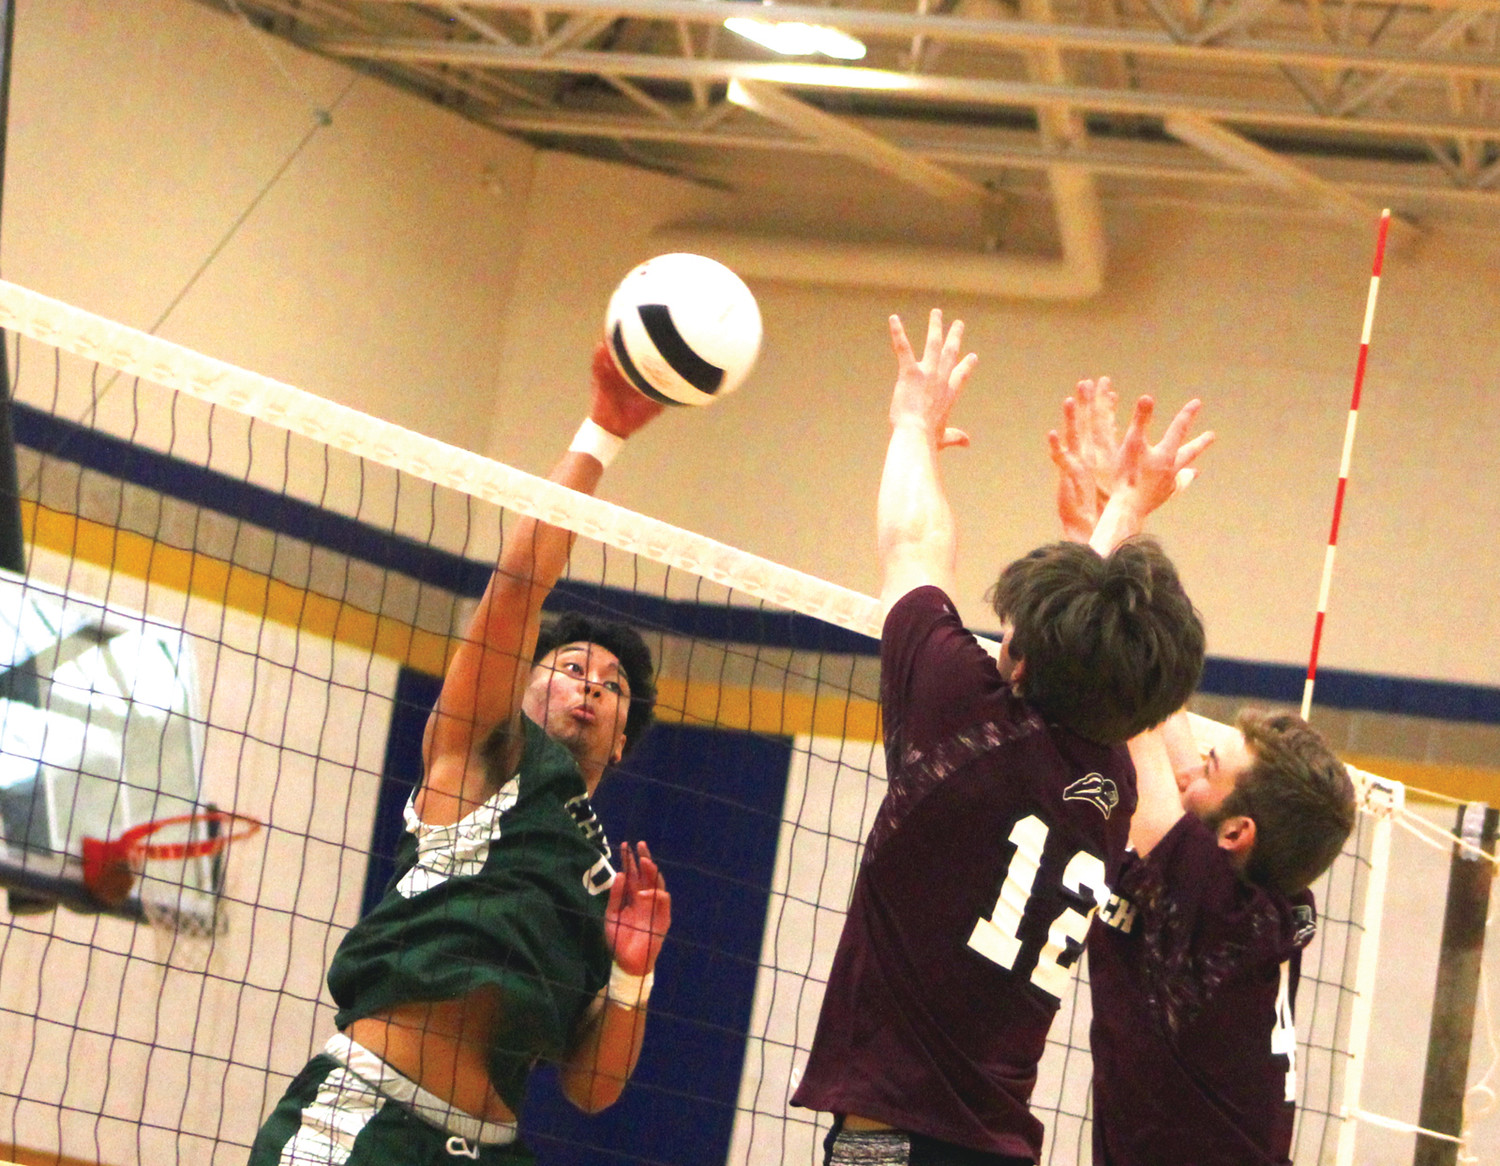 AT THE NET: Cranston East's Nick Chea attempts a spike against East Greenwich during the state title game on Saturday.